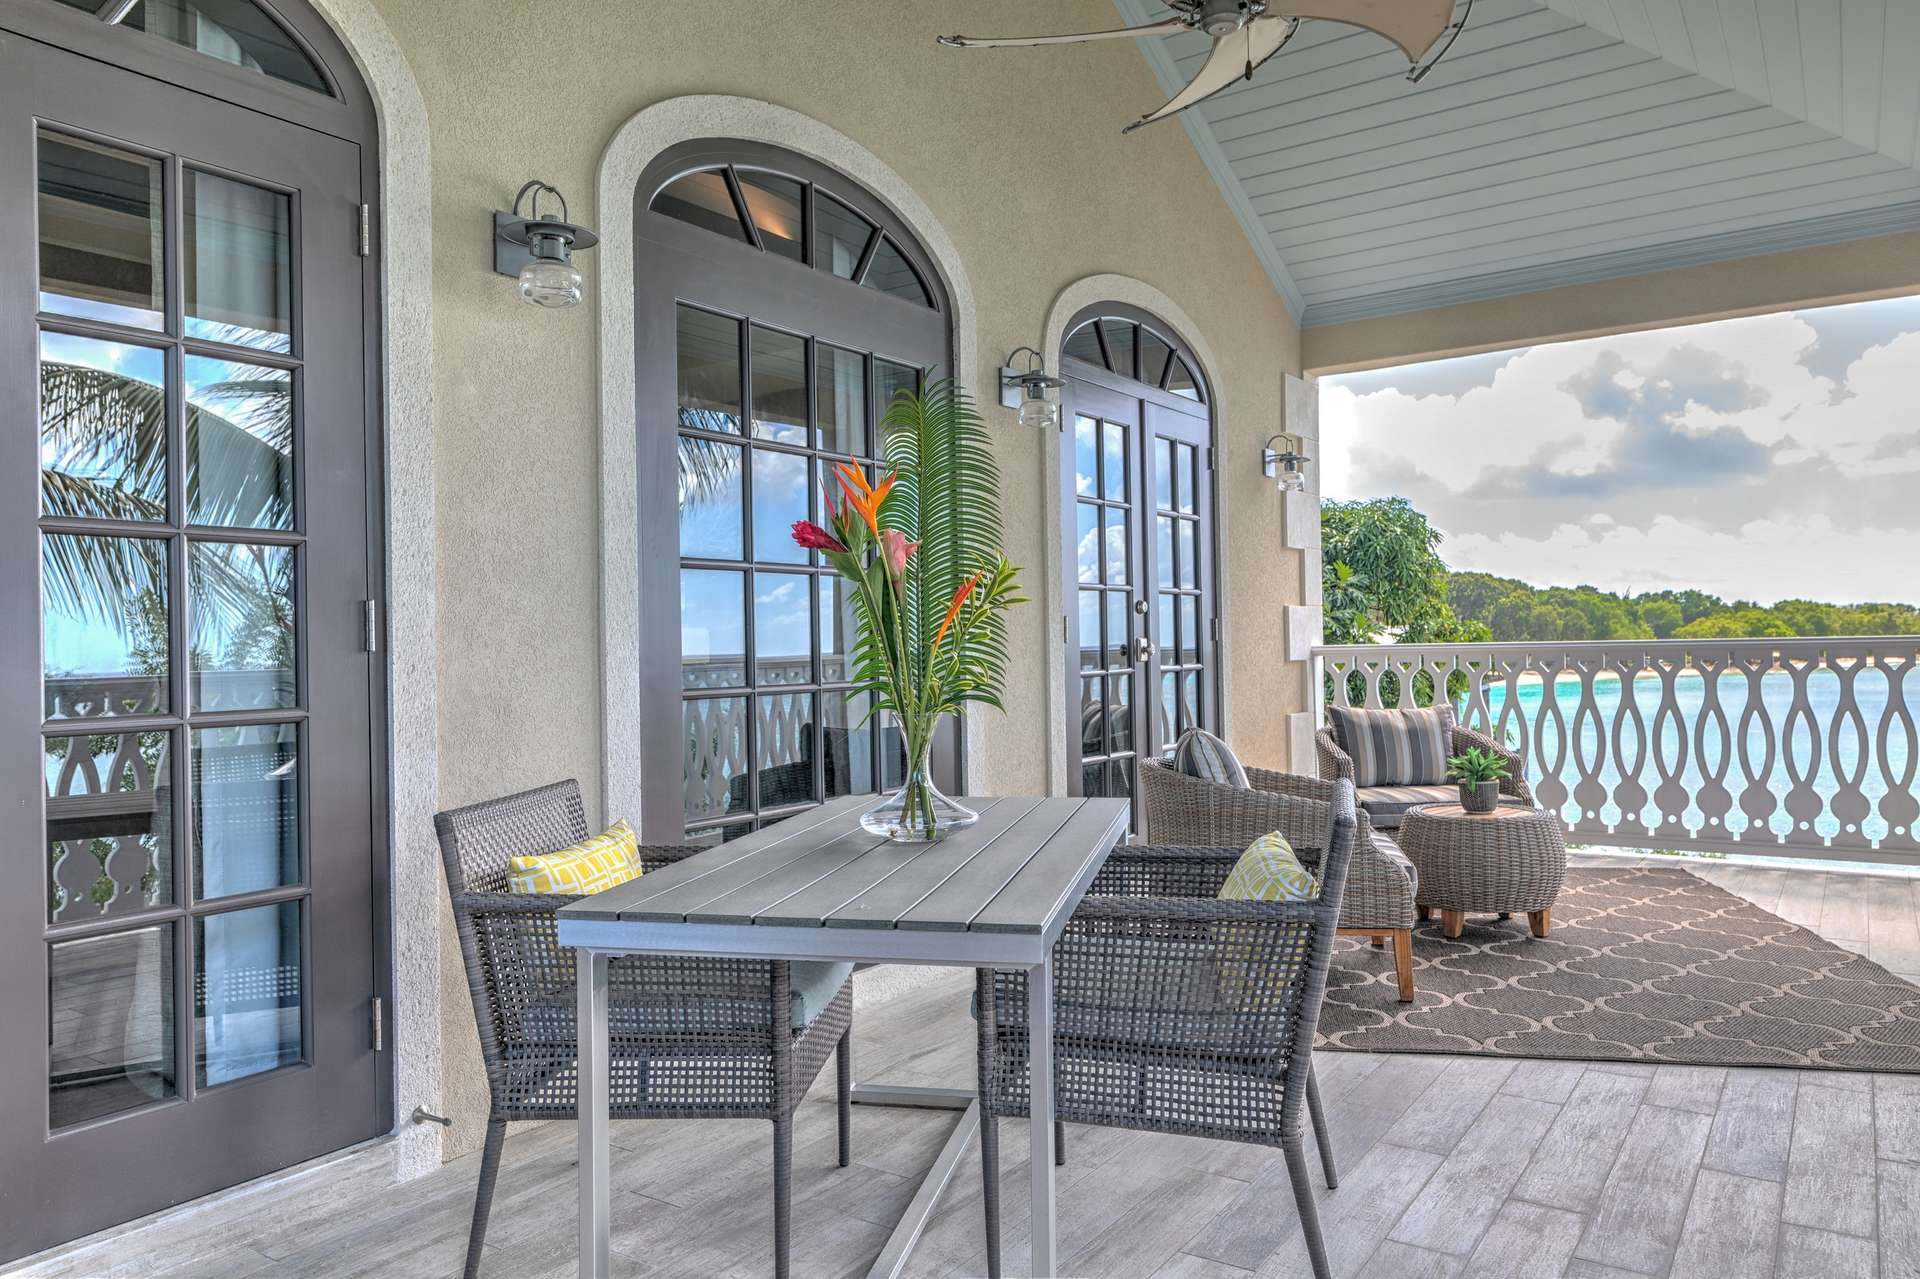 Luxury villa rentals caribbean - Barbados - St james - Prospect - The Reef - Image 1/20